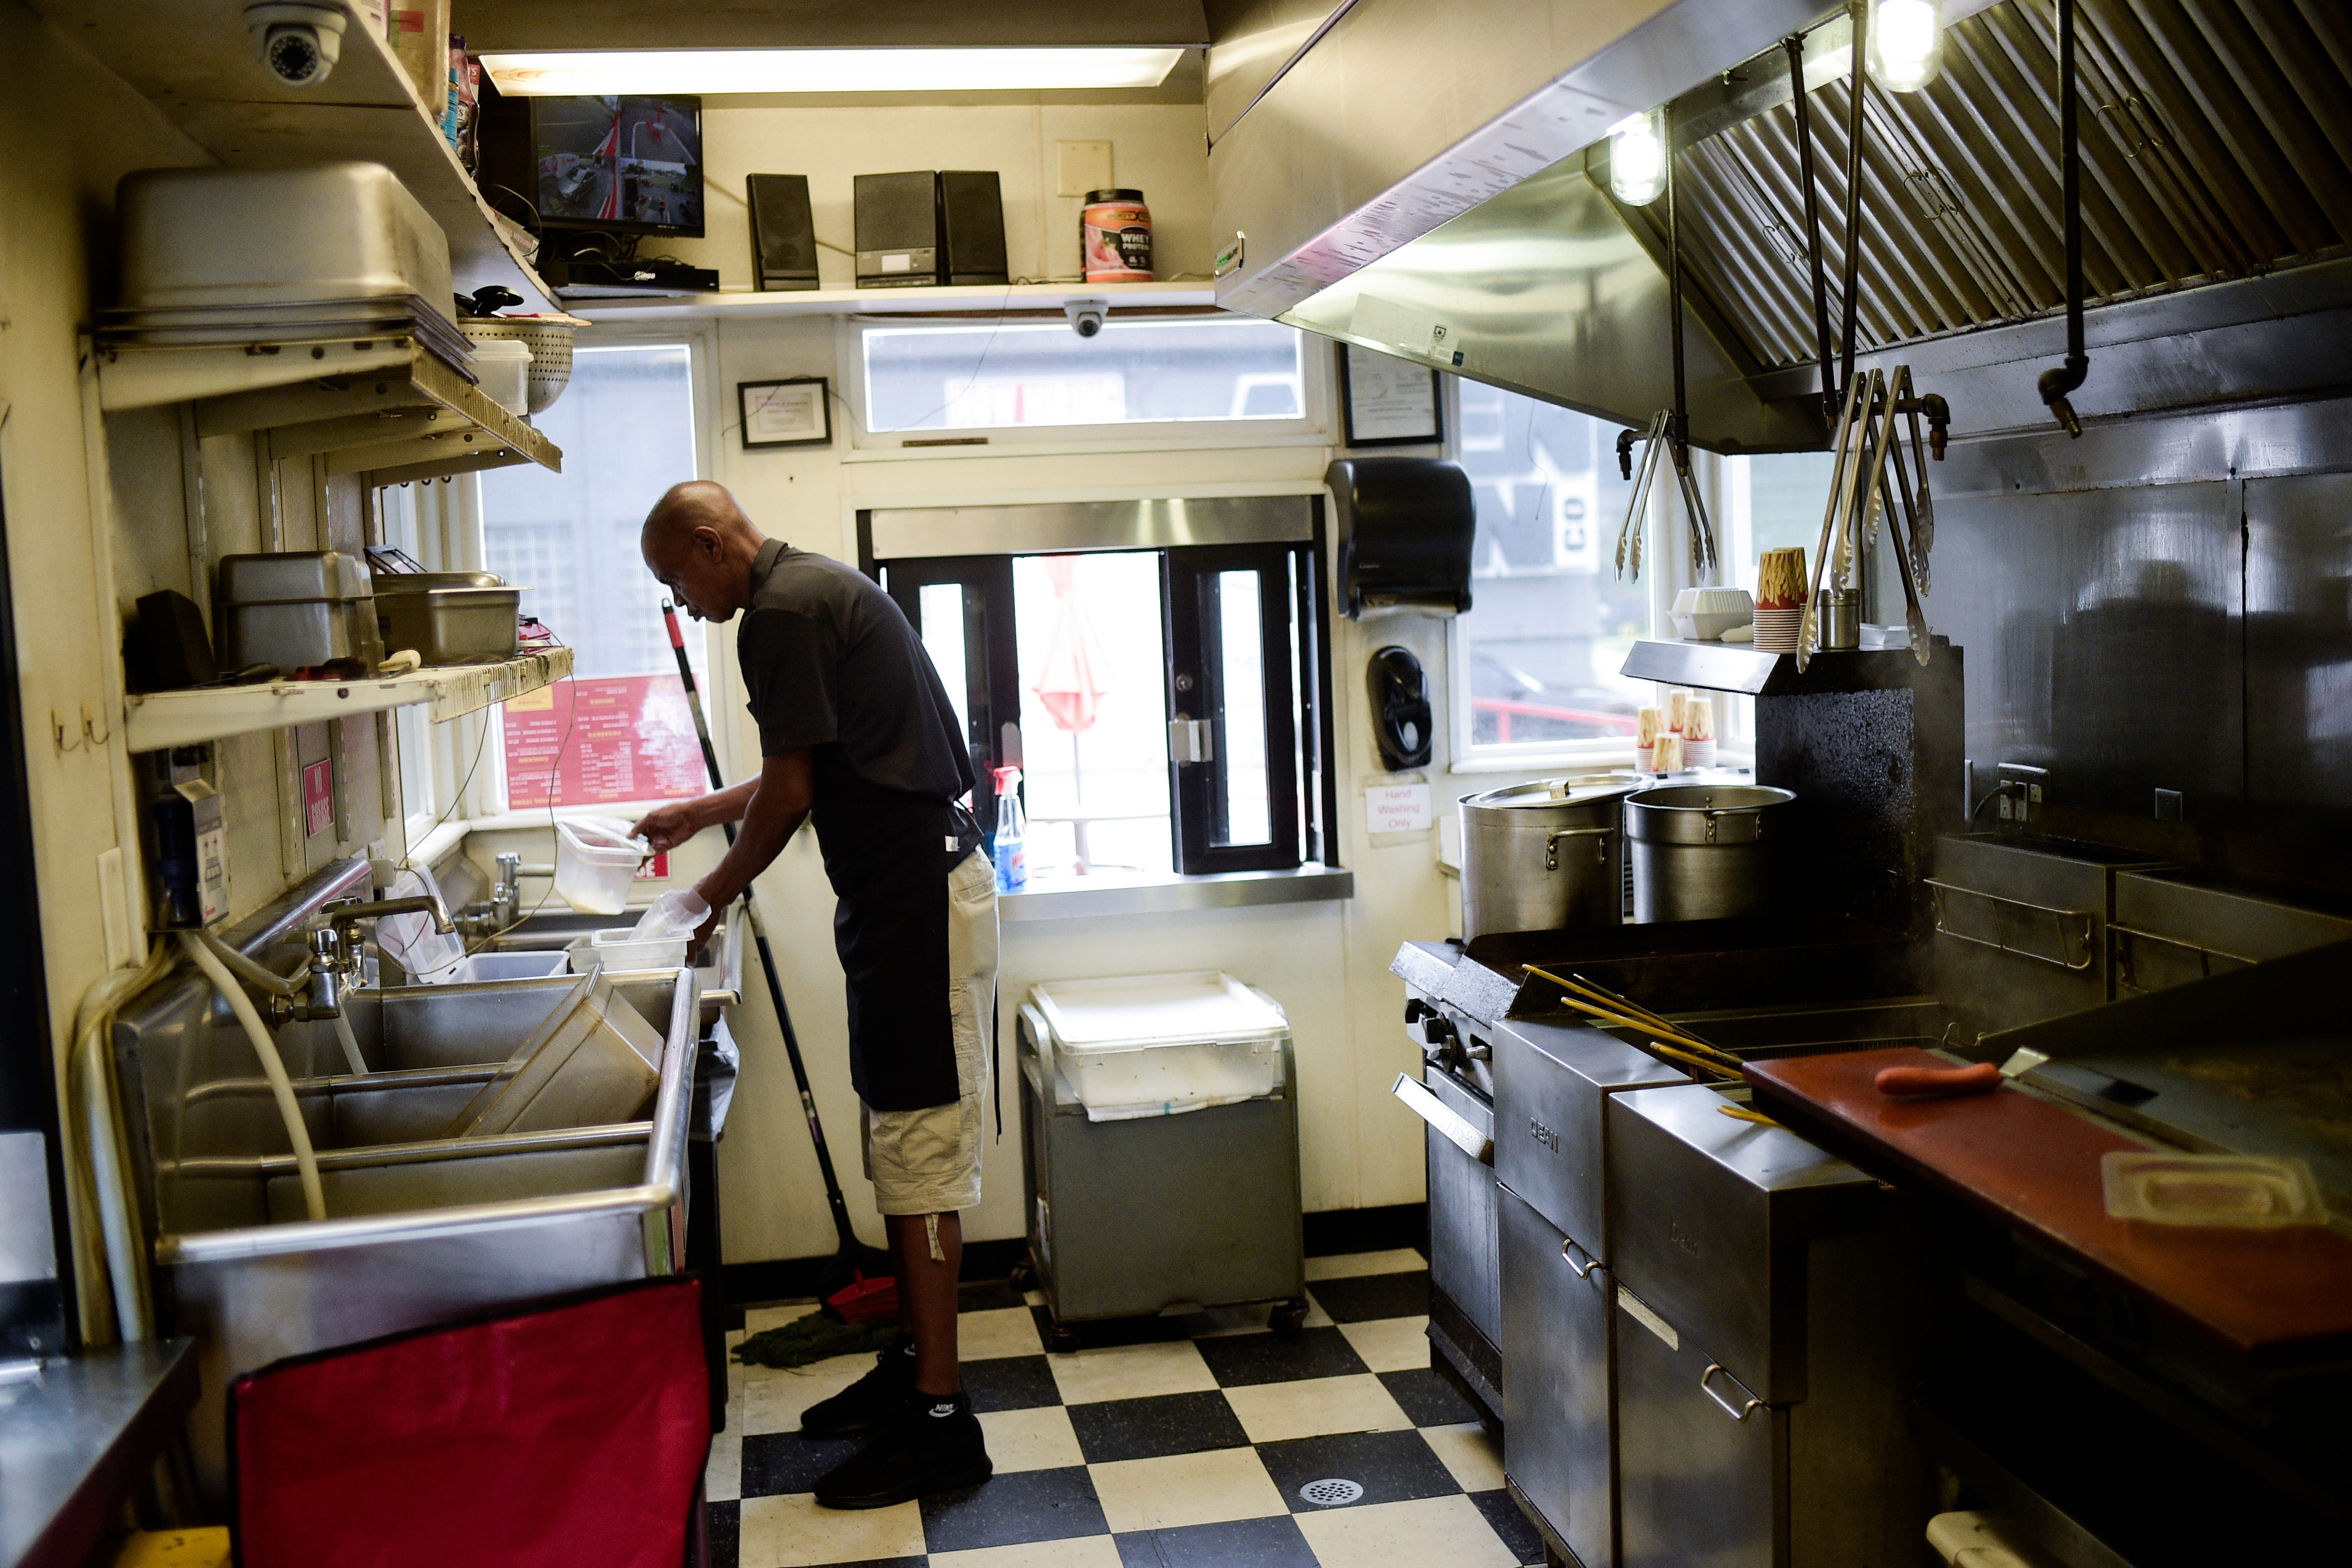 The Burger Boys building on Chapman Highway is barely big enough for two people, but that's all the space Andre Bryant needs. He has a potato cutter on the wall, two small deep fryers, a single grill and a burger-making station complete with his fresh toppings for the day.